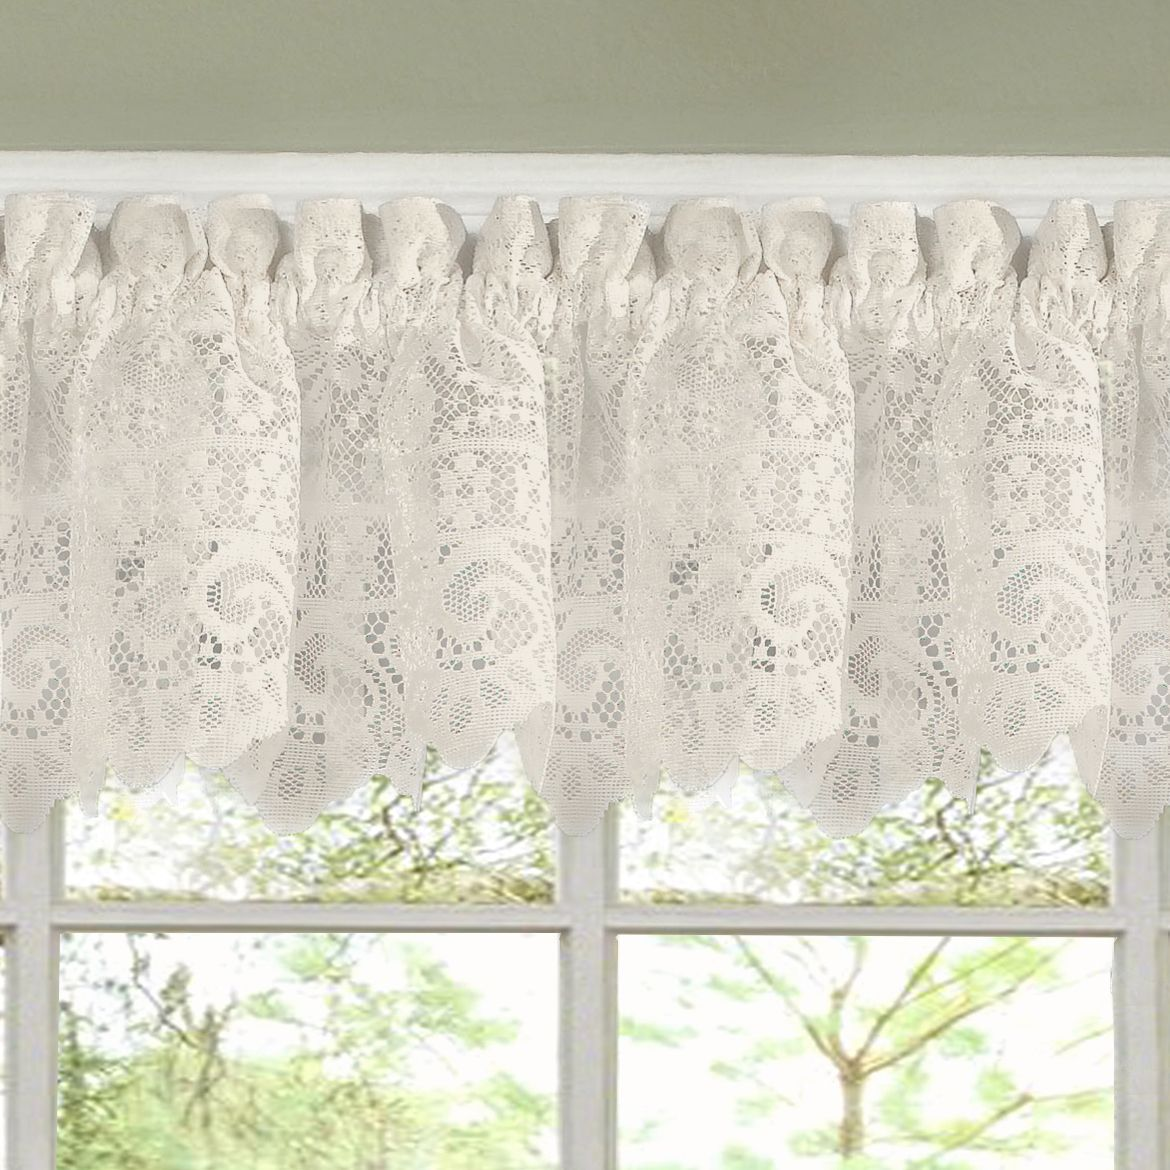 N Luxurious Old World Style Lace Kitchen Curtains Tiers And Valances In Cream Tailored Valance Beige Off White Size 58 Inches Polyester